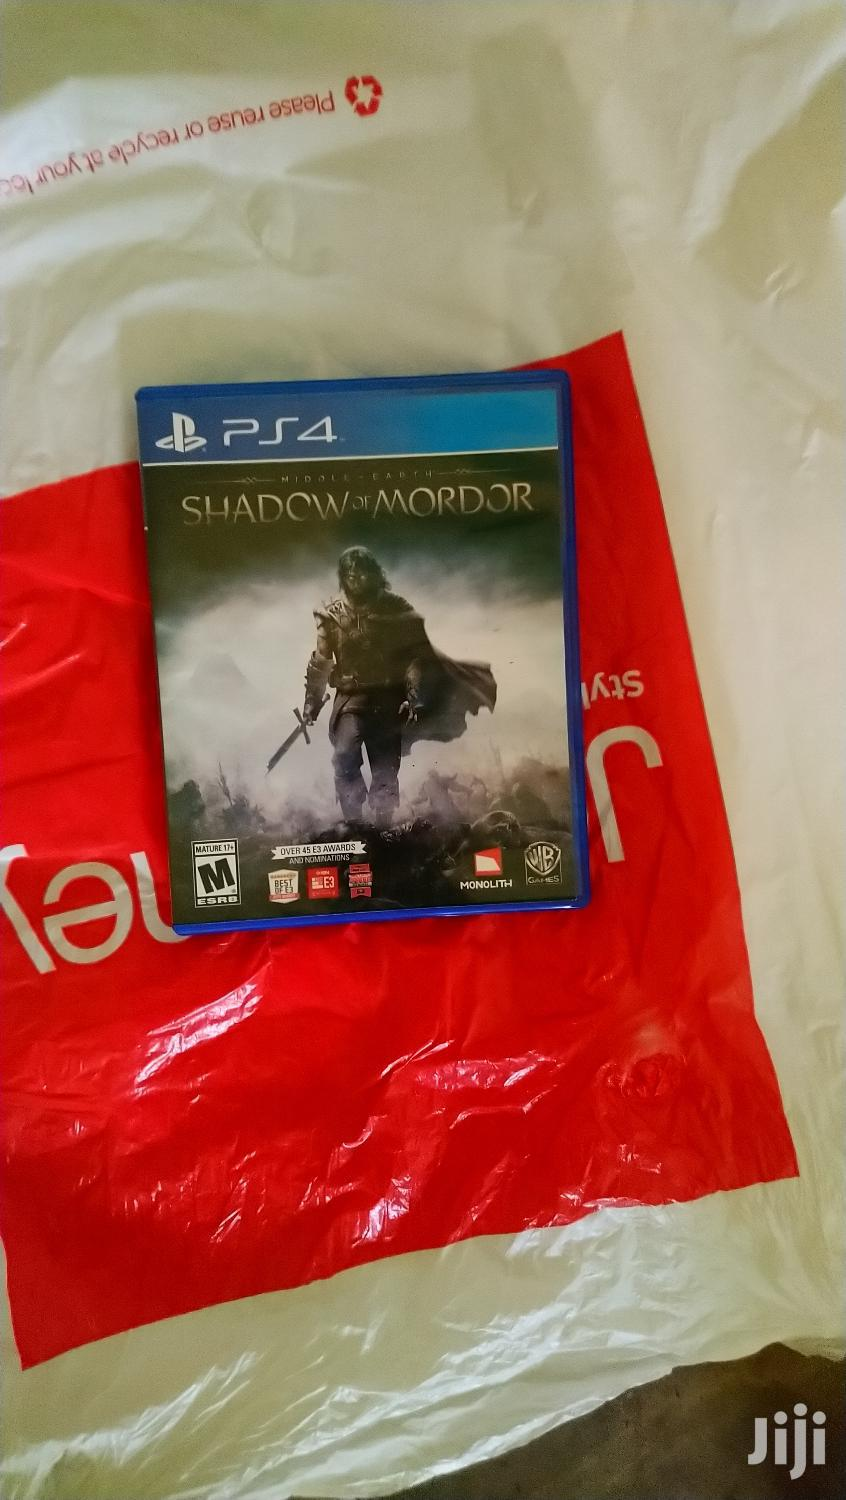 Archive: Shadow In Mordor Ps4 Game